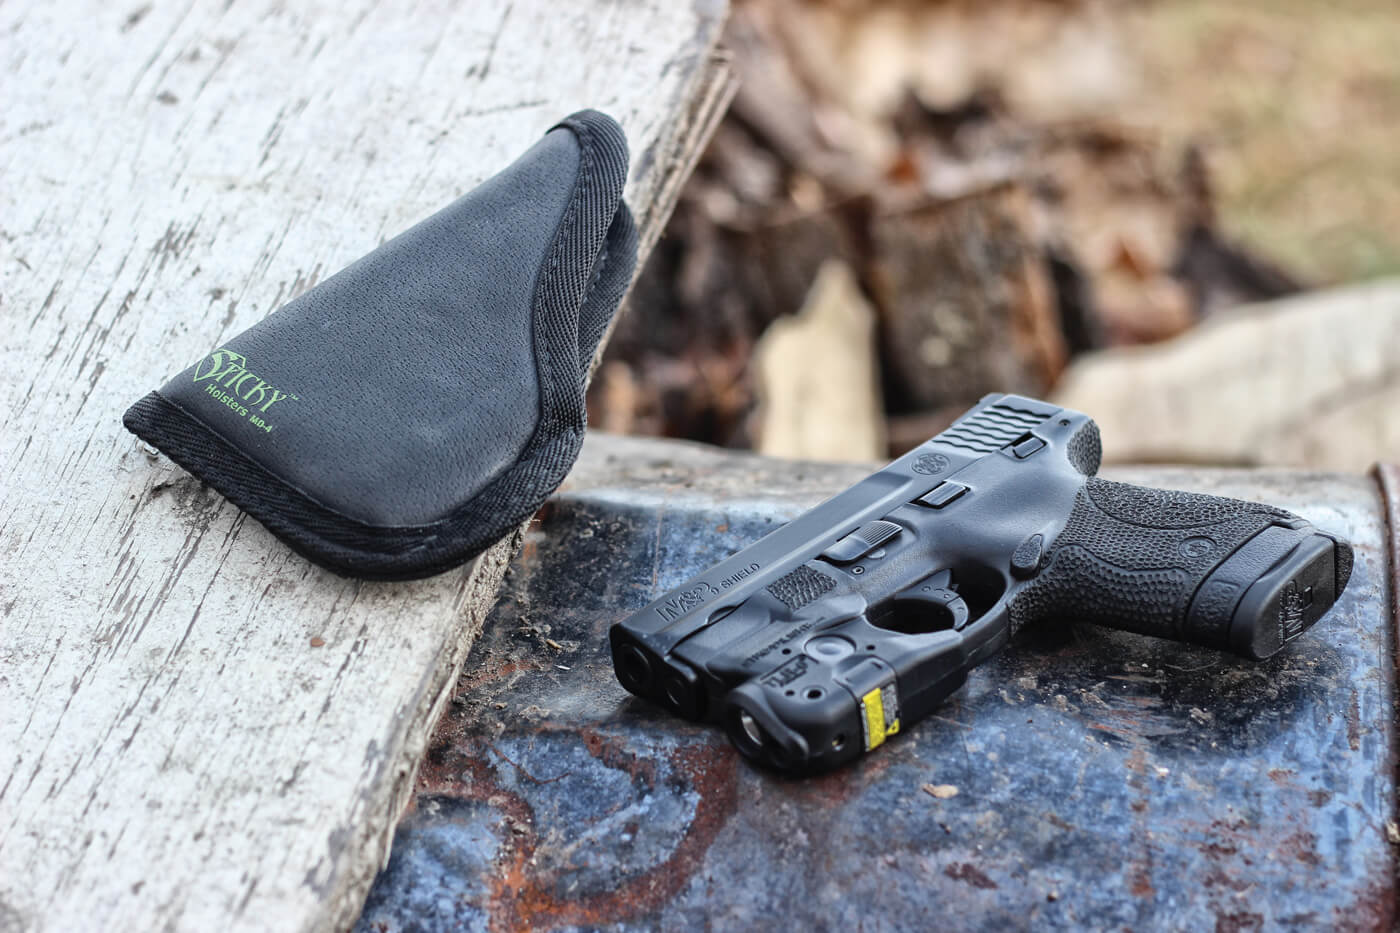 Smith & Wesson Shield pistol with Streamlight attached, shown next to Sticky holster